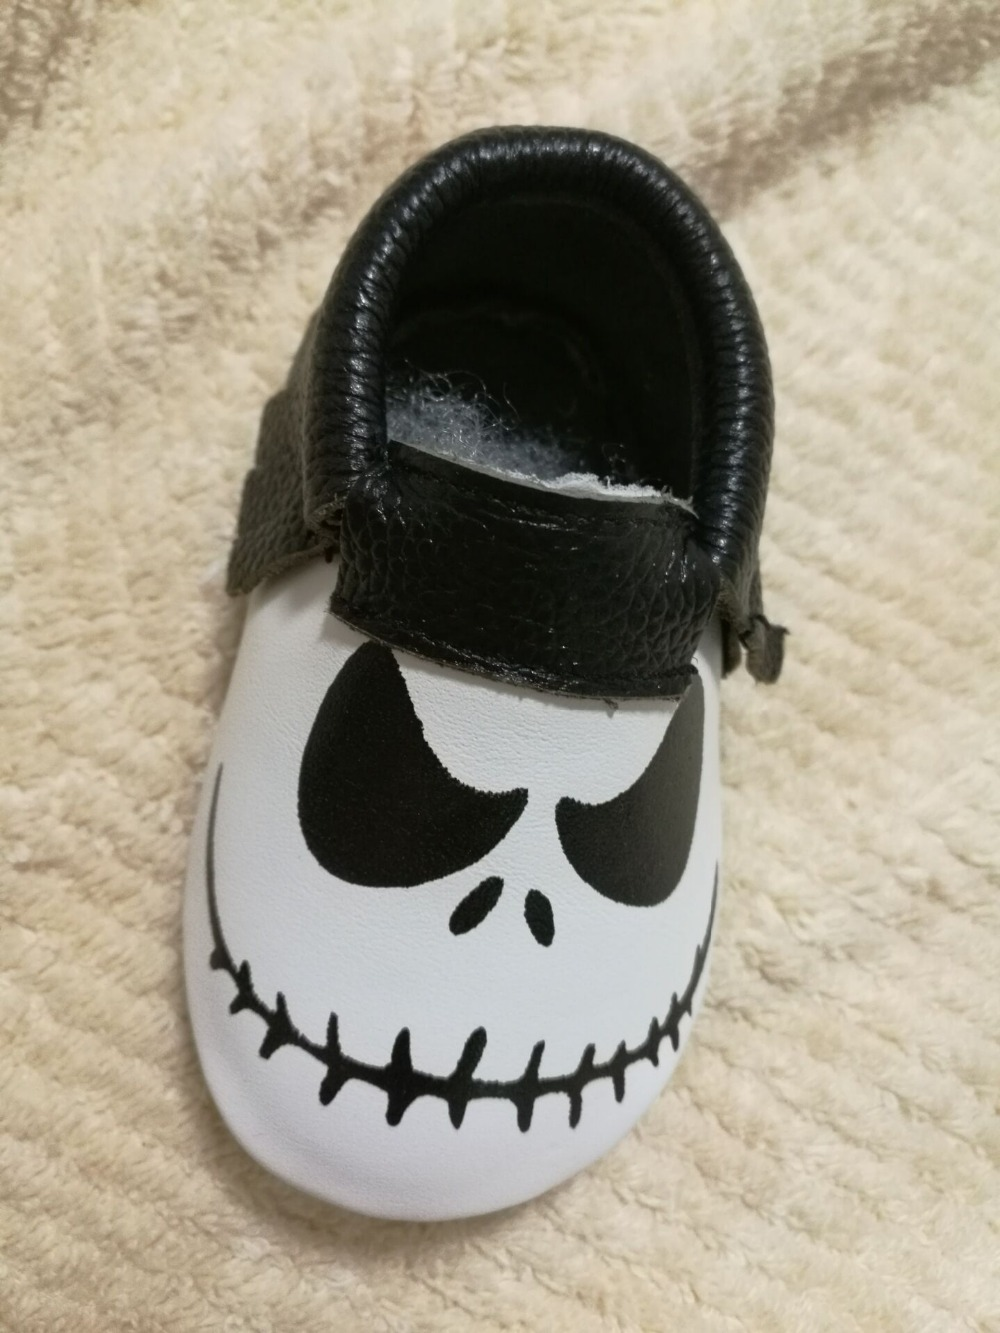 New-Stylish-Genuine-Leather-Baby-Moccasins-Shoes-Halloween-presents-for-bebe-Baby-Shoes-Newborn-first-walker-toddler-Shoes-1